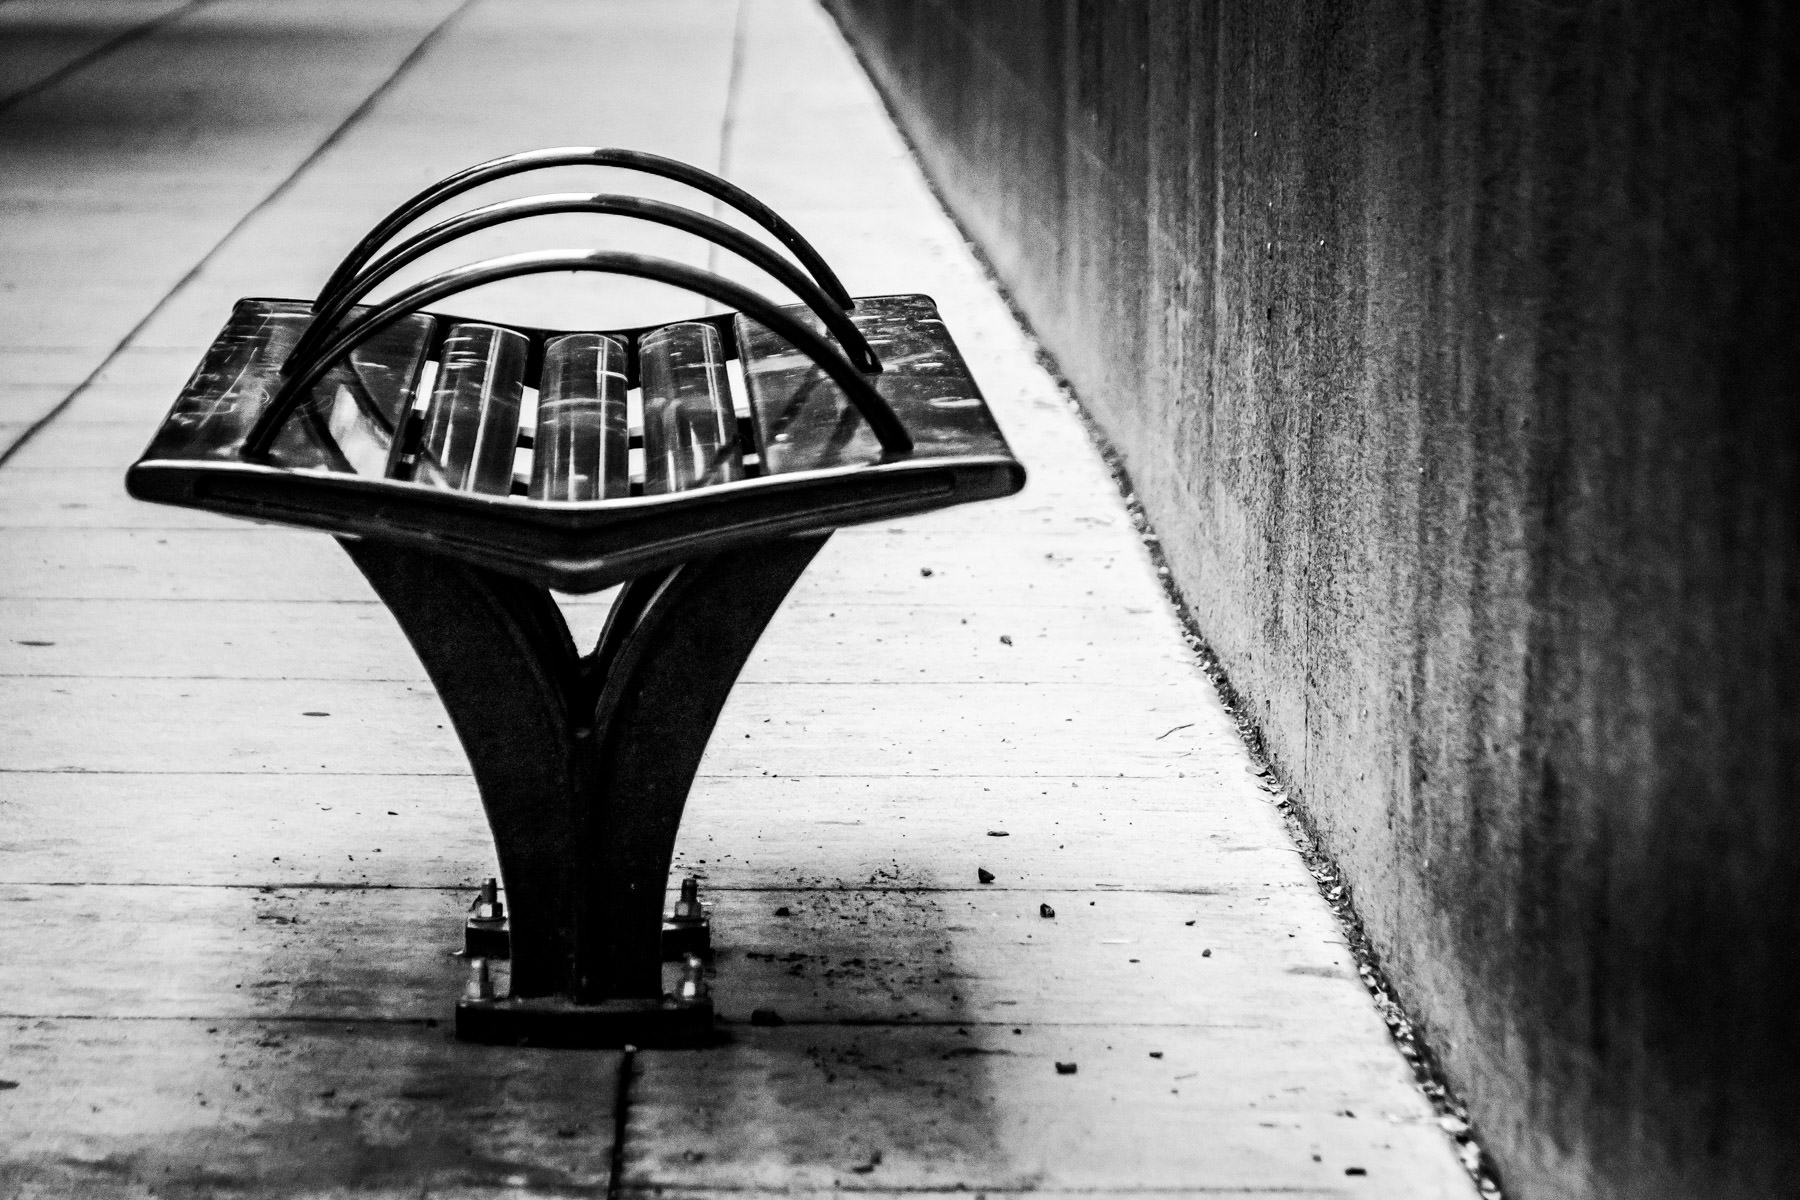 A modern bench in Downtown Dallas.